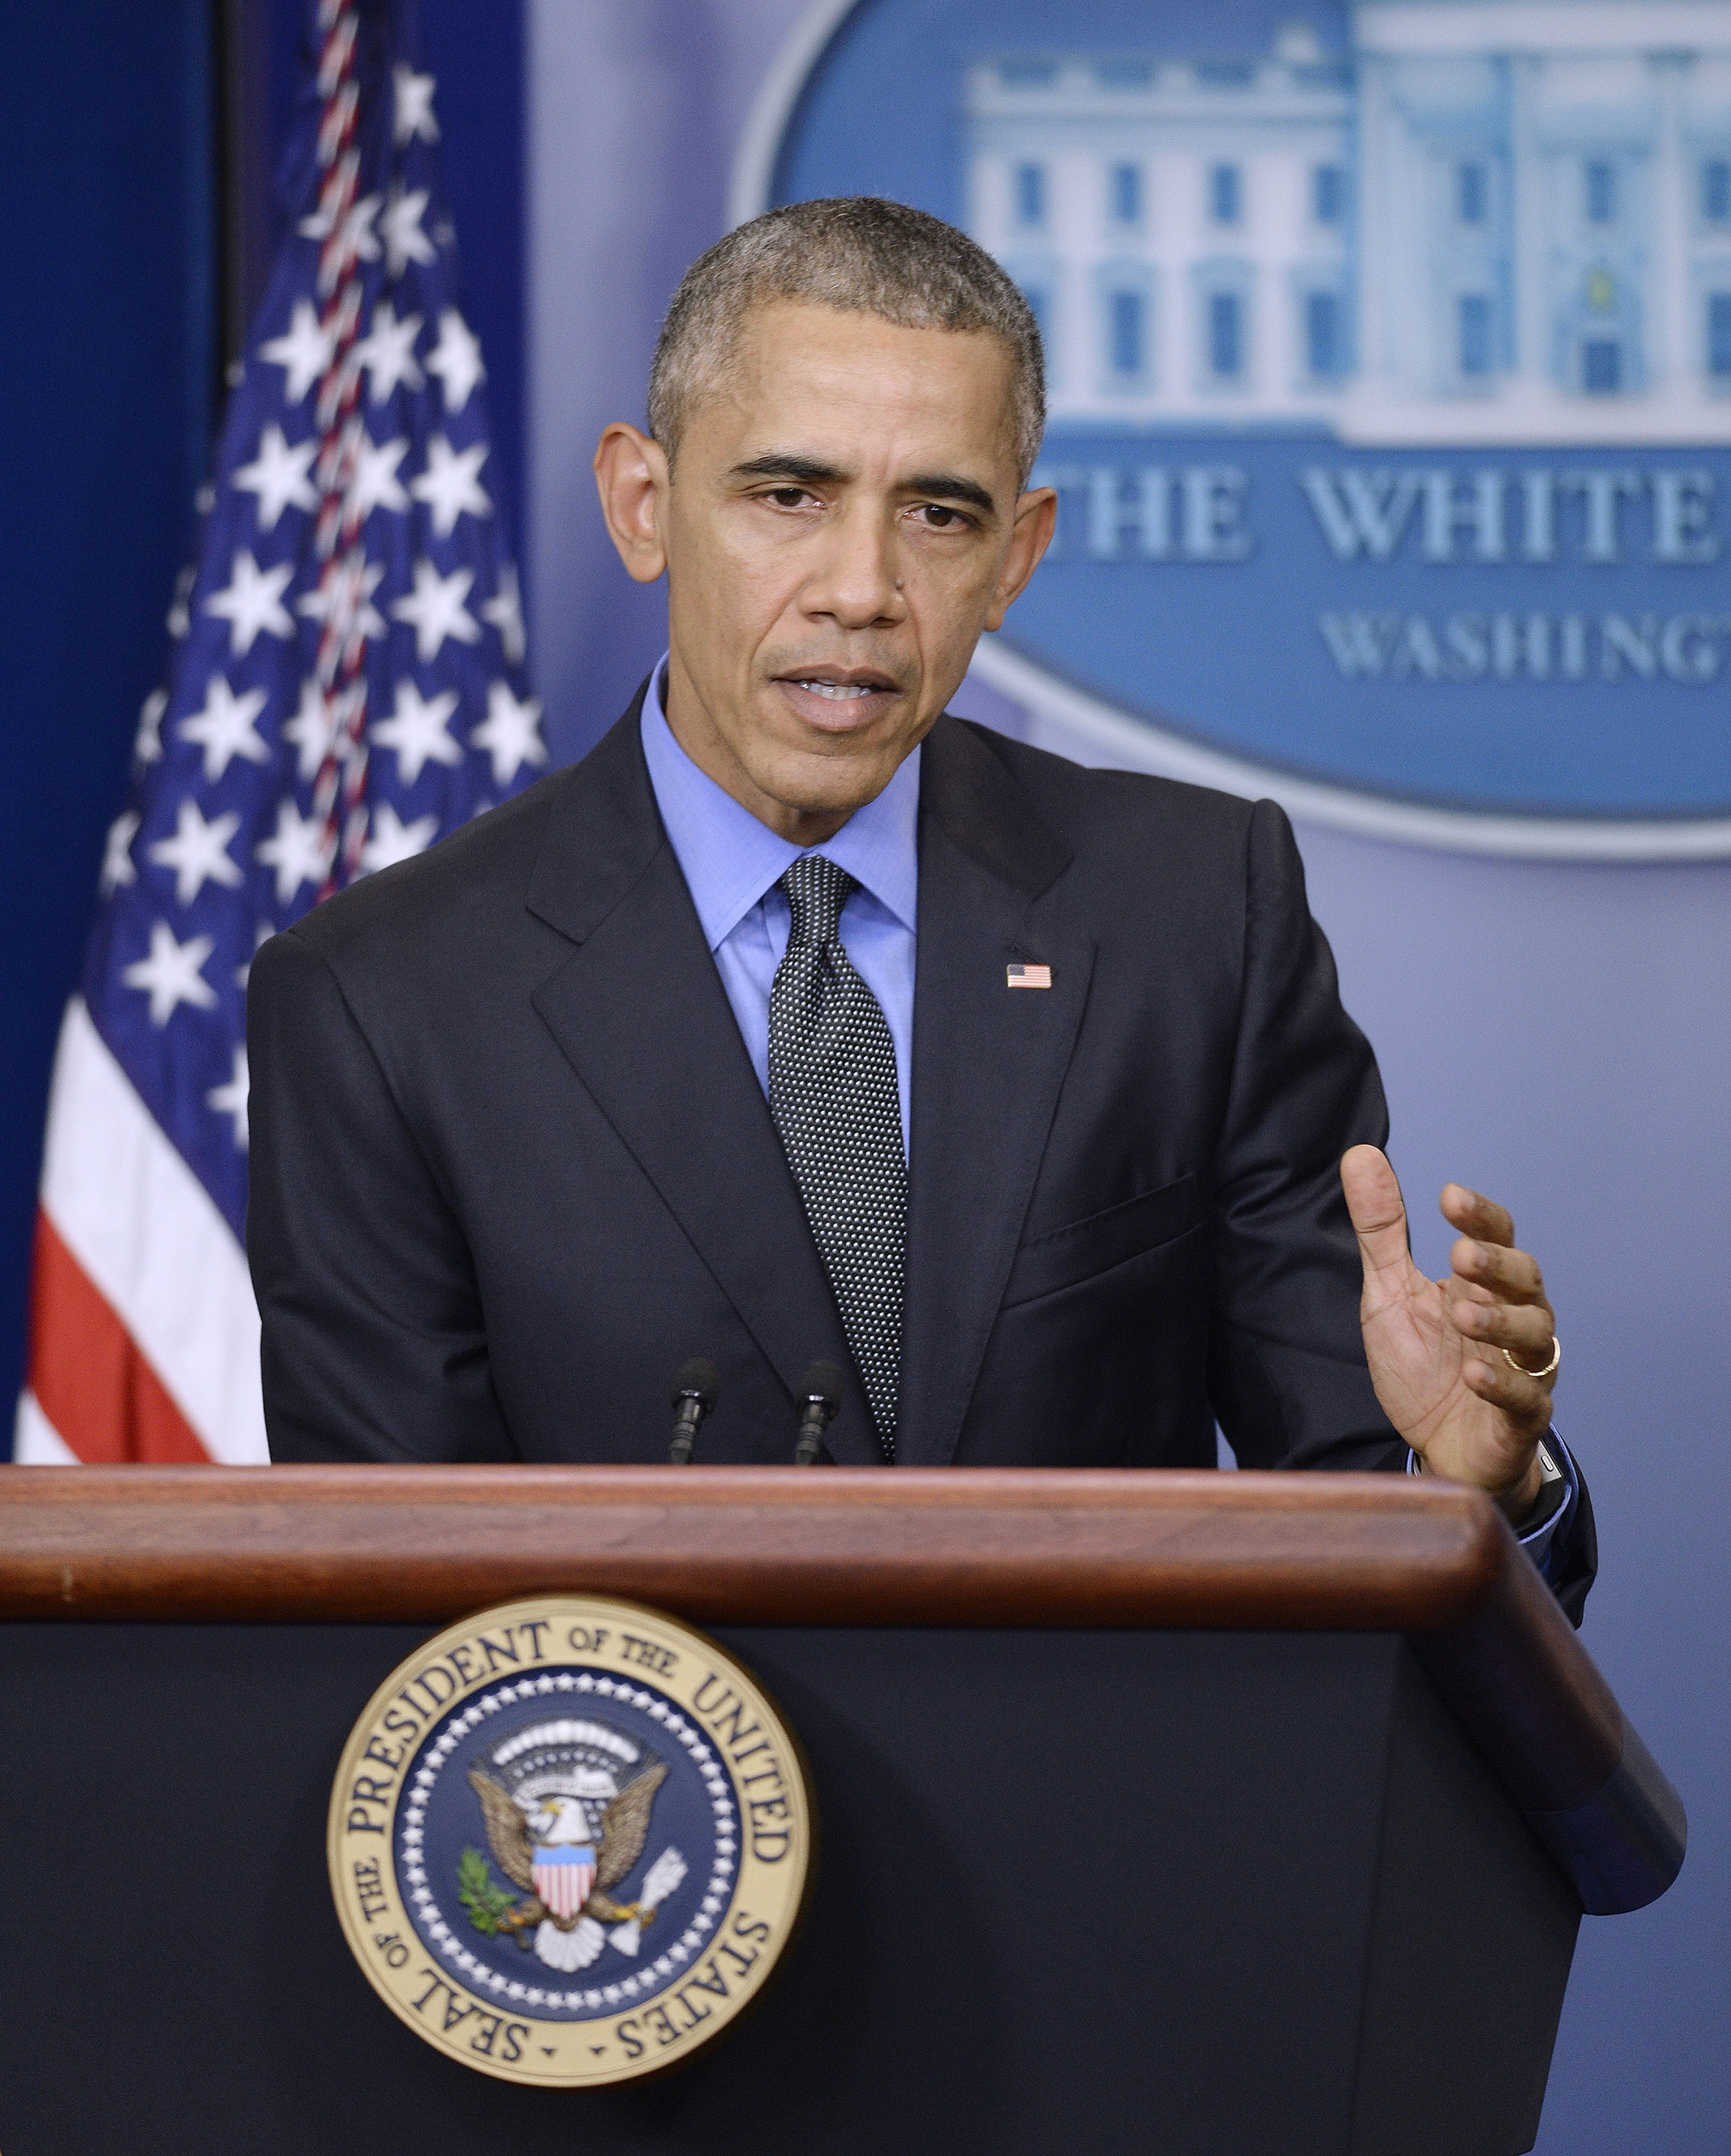 The fight over who will succeed President Obama will dominate the news for much of 2016.